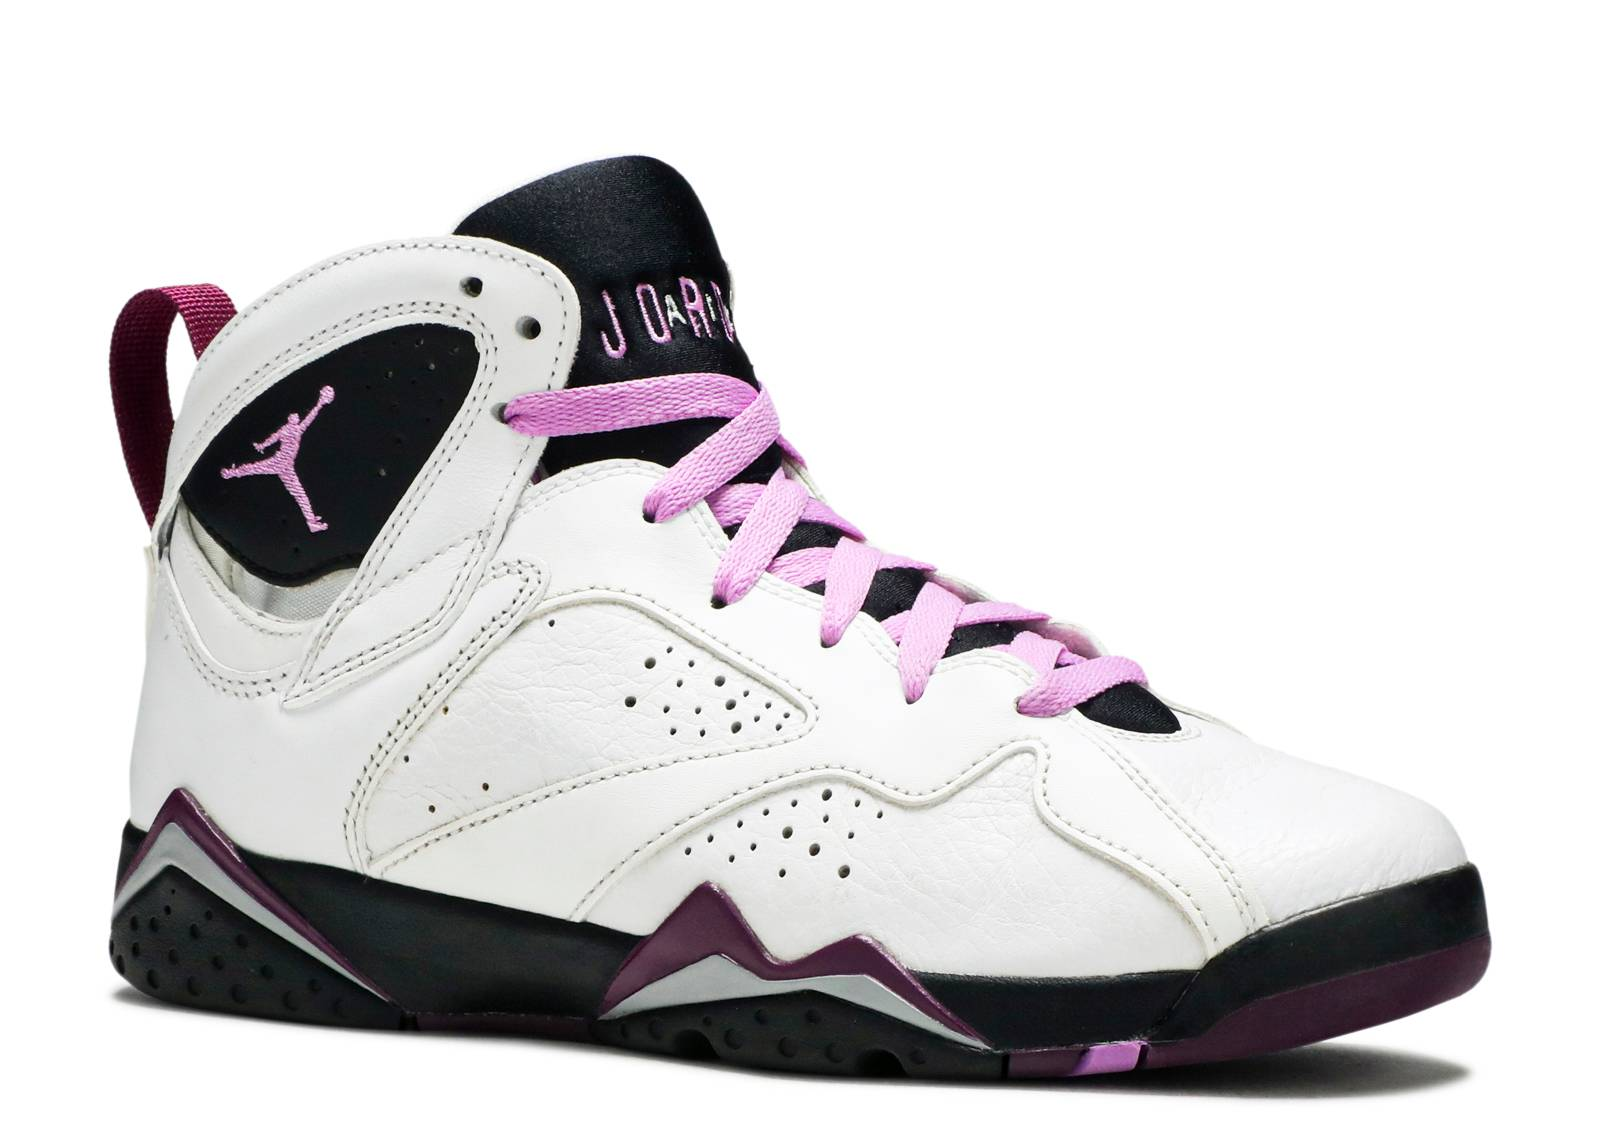 New Youth Air Jordan 7 Retro GG Shoes Youth US 7 Eur 40 442960-127